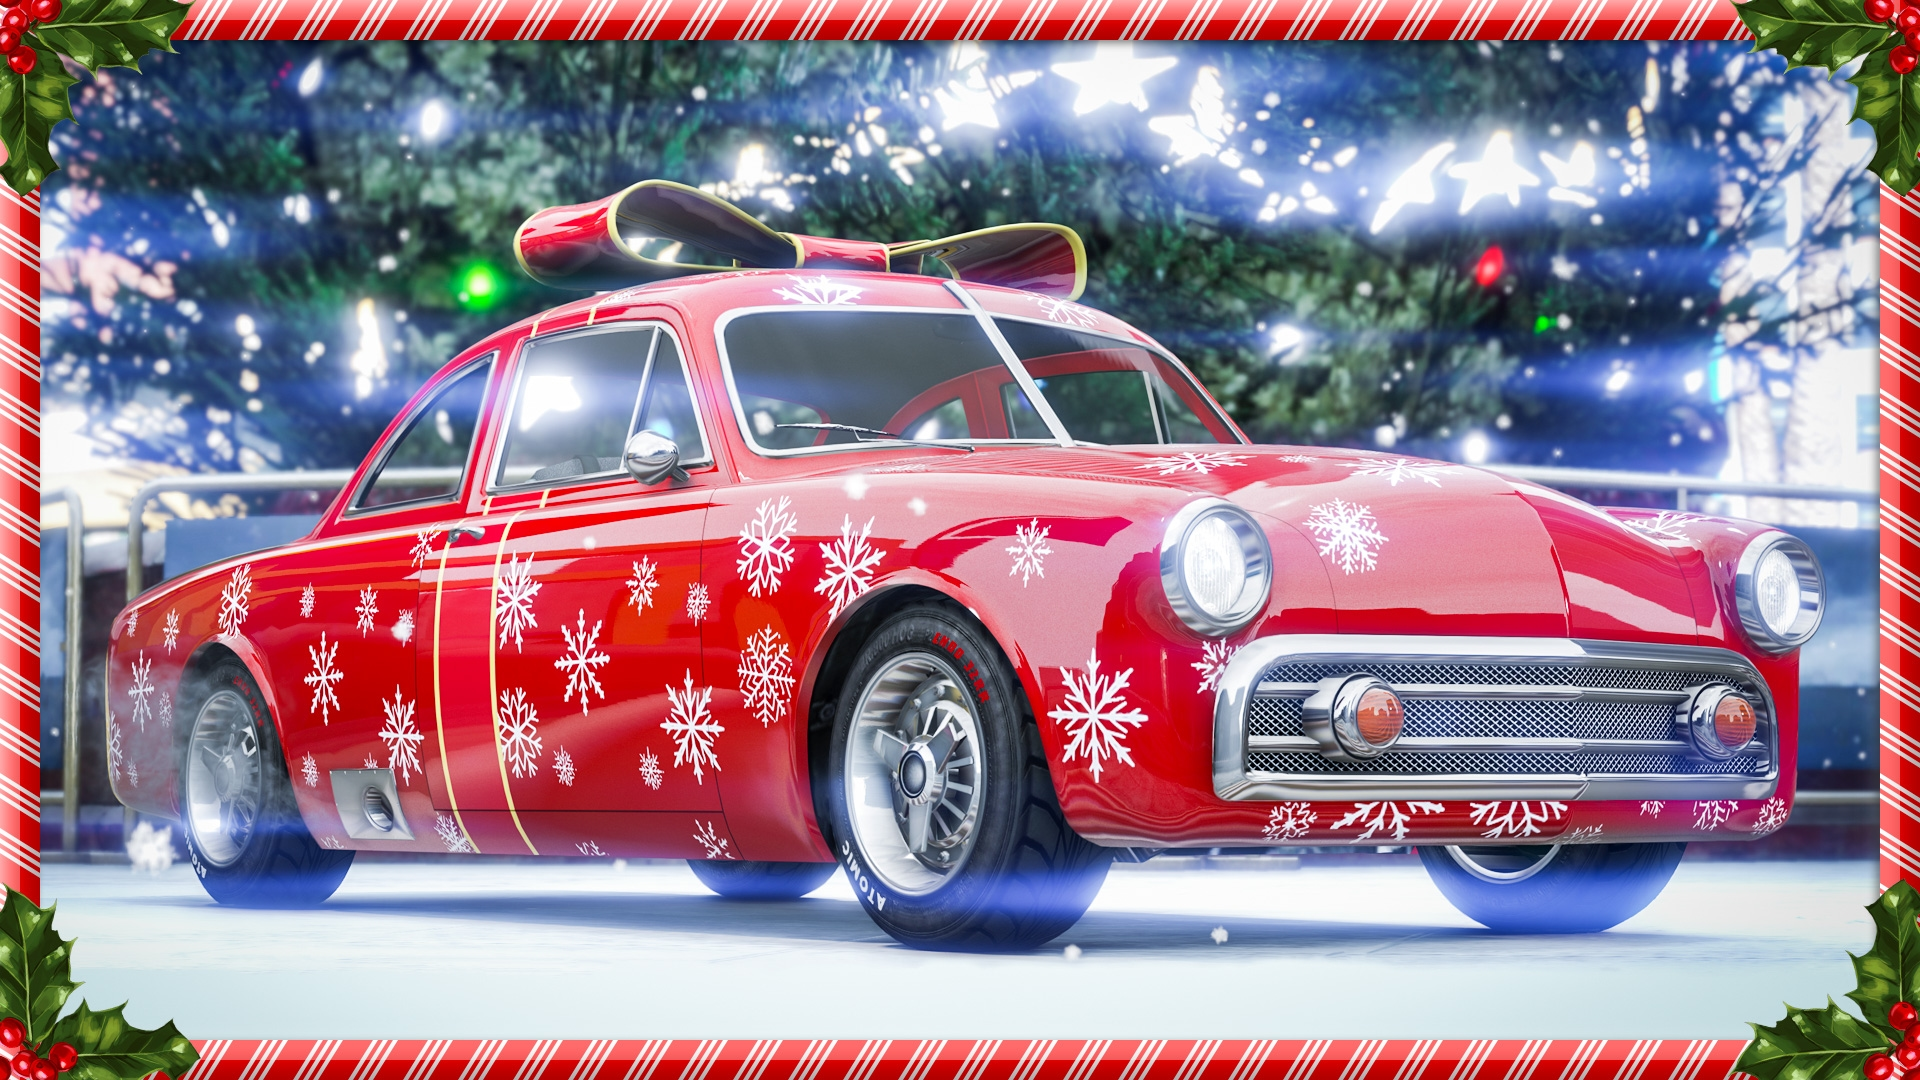 festive surprise 2018 in gta online - rockstar games